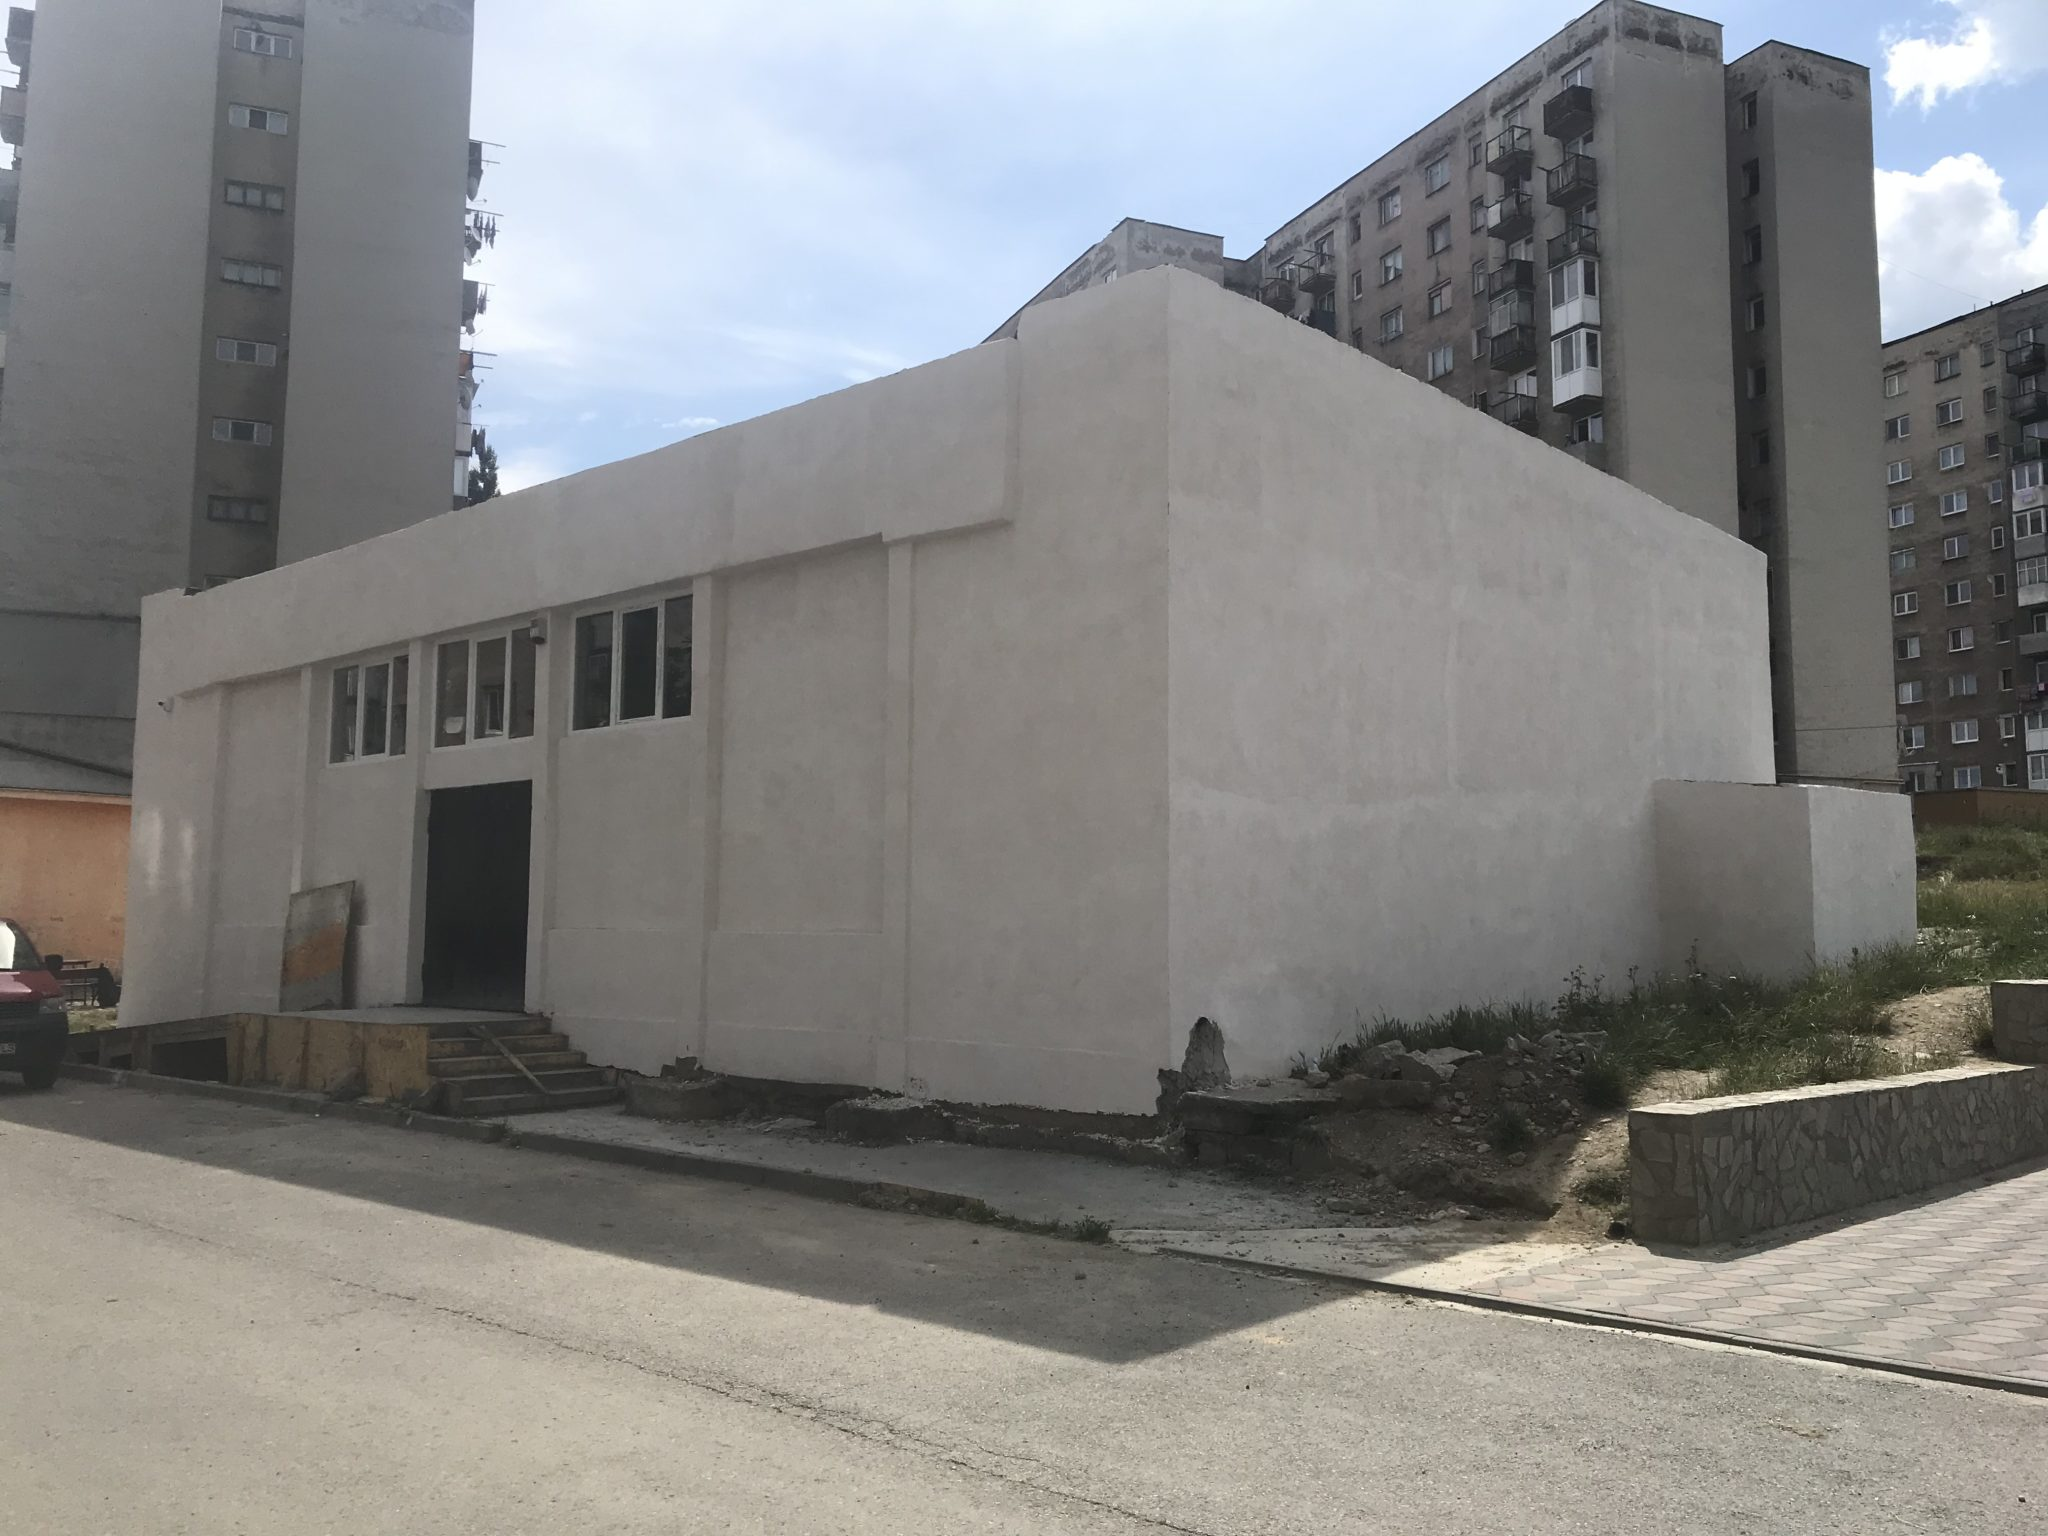 A cement building amid high-rise apartments is the site of a new church plant in Romania.